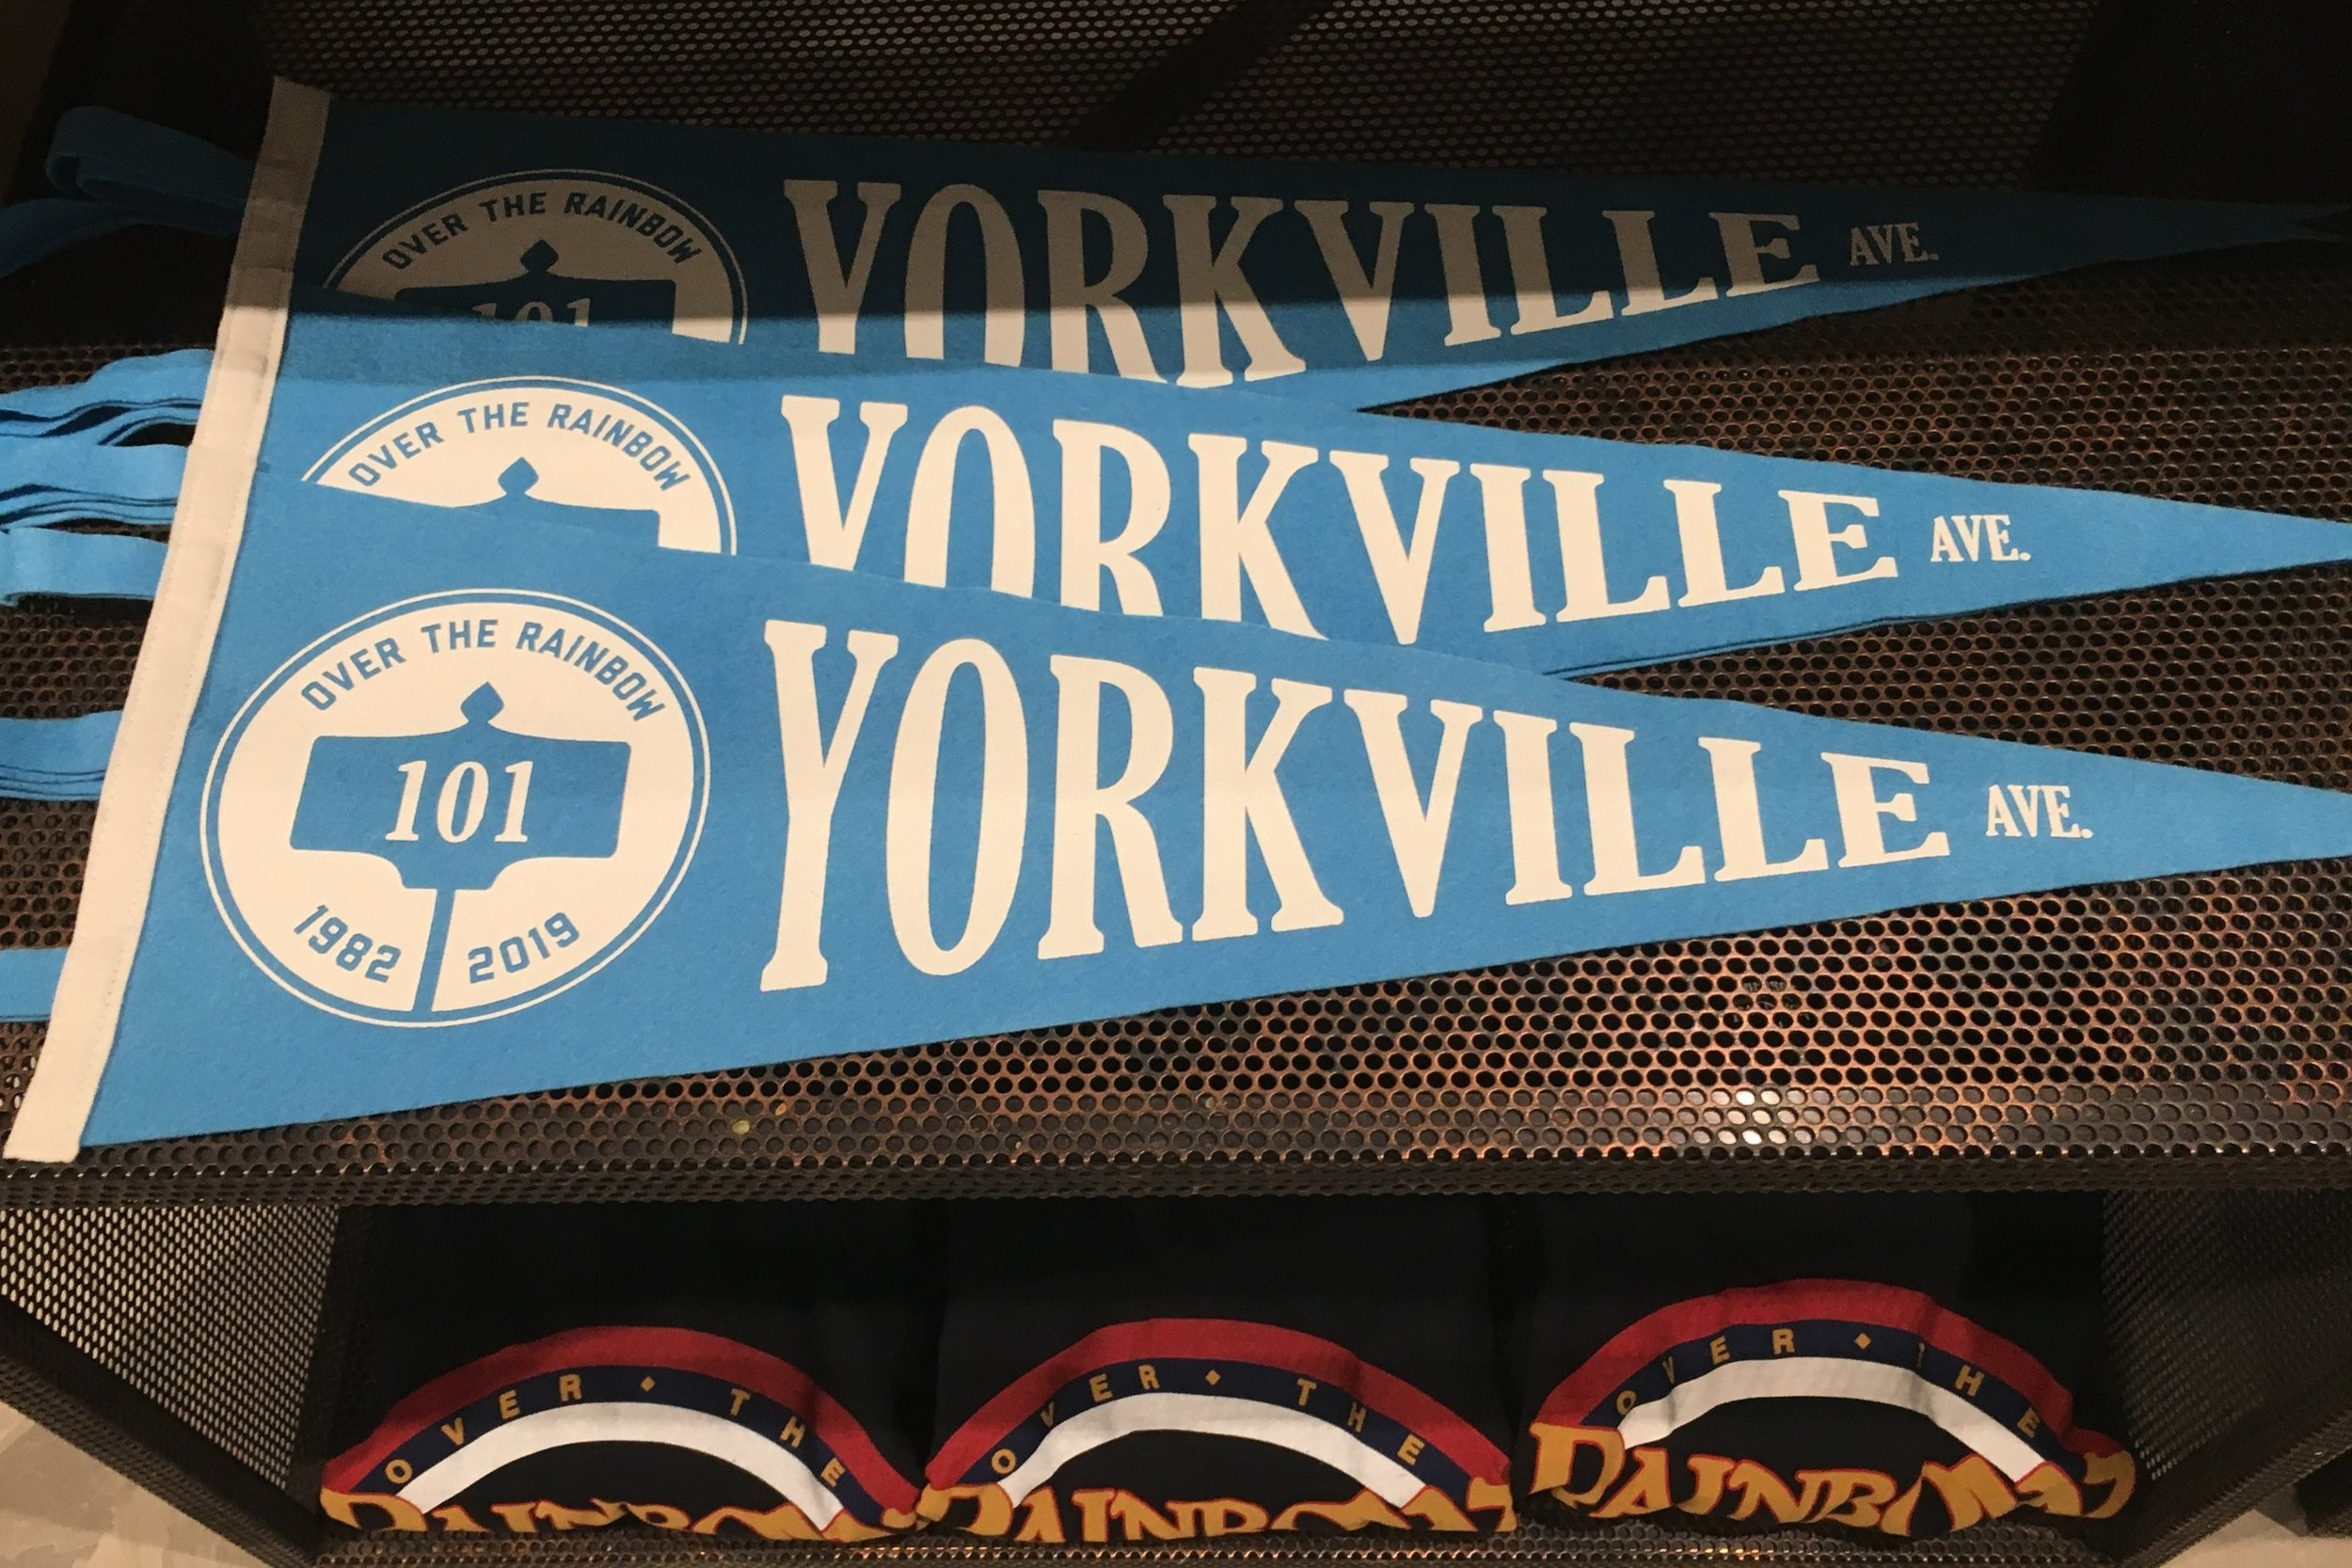 Yorkville-branded merchandise in the new store. Photo: Craig Patterson